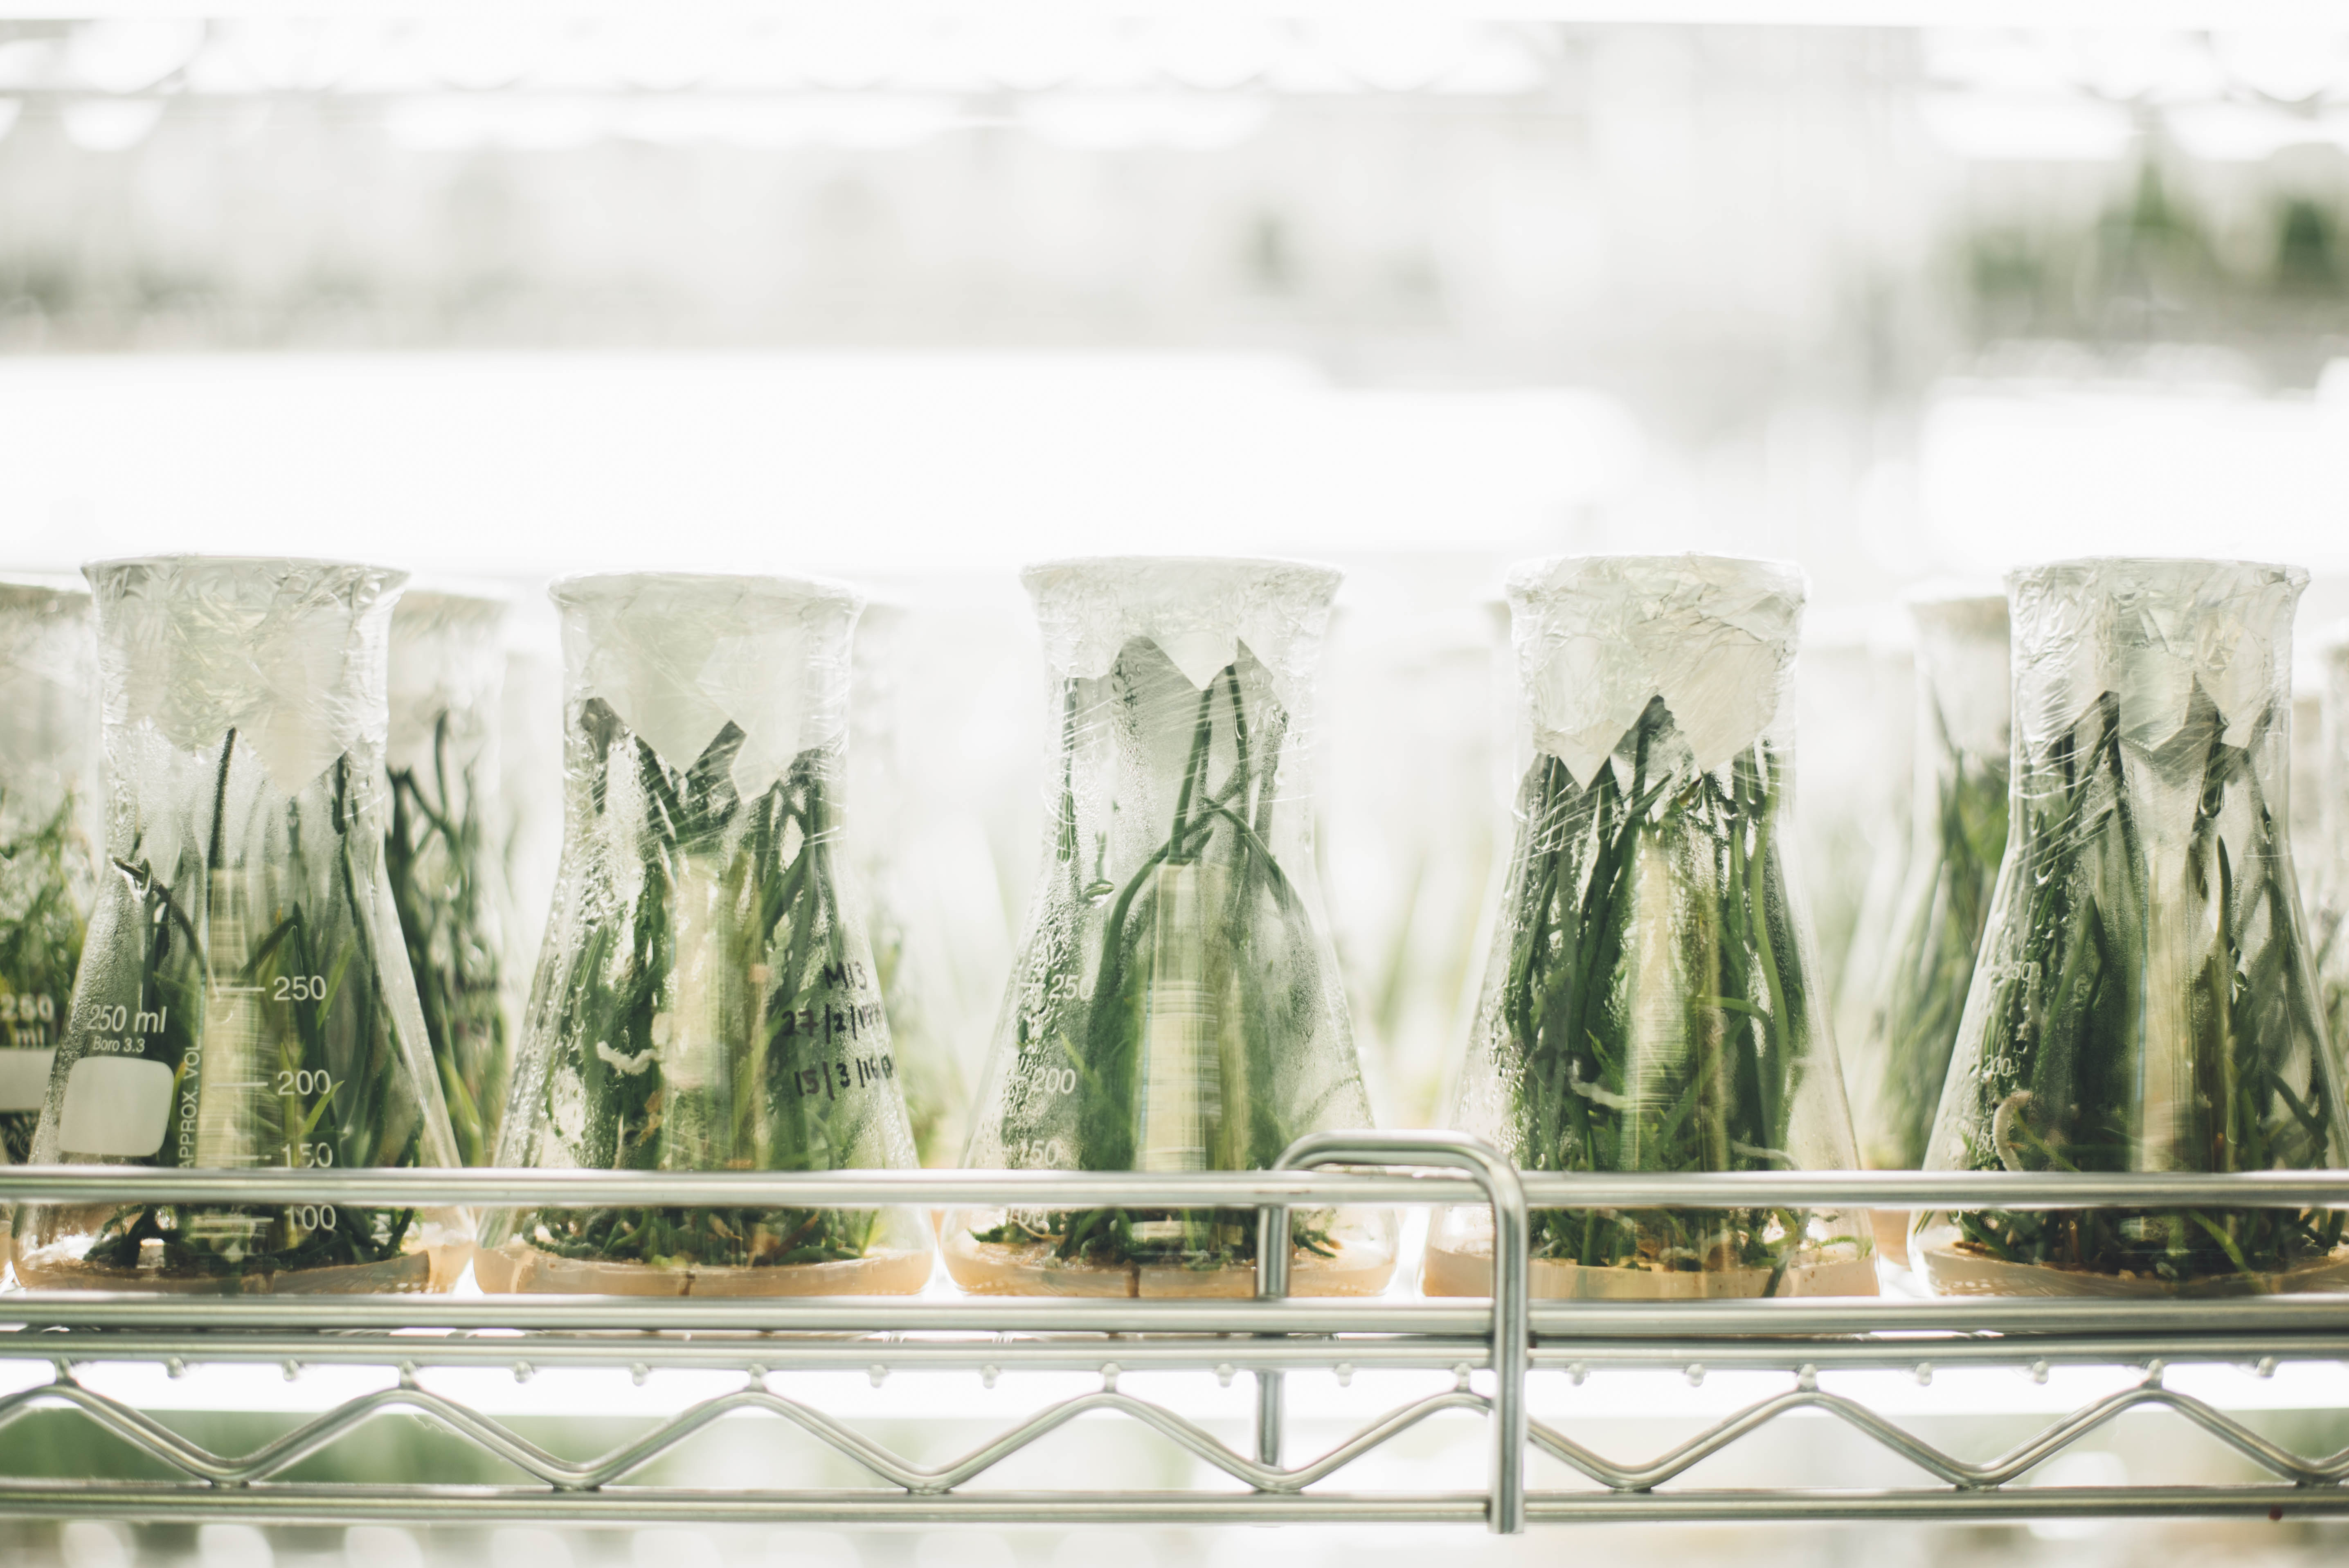 A large number of covered beakers are lined up in an orderly fashion, each filled with green vegetation growth